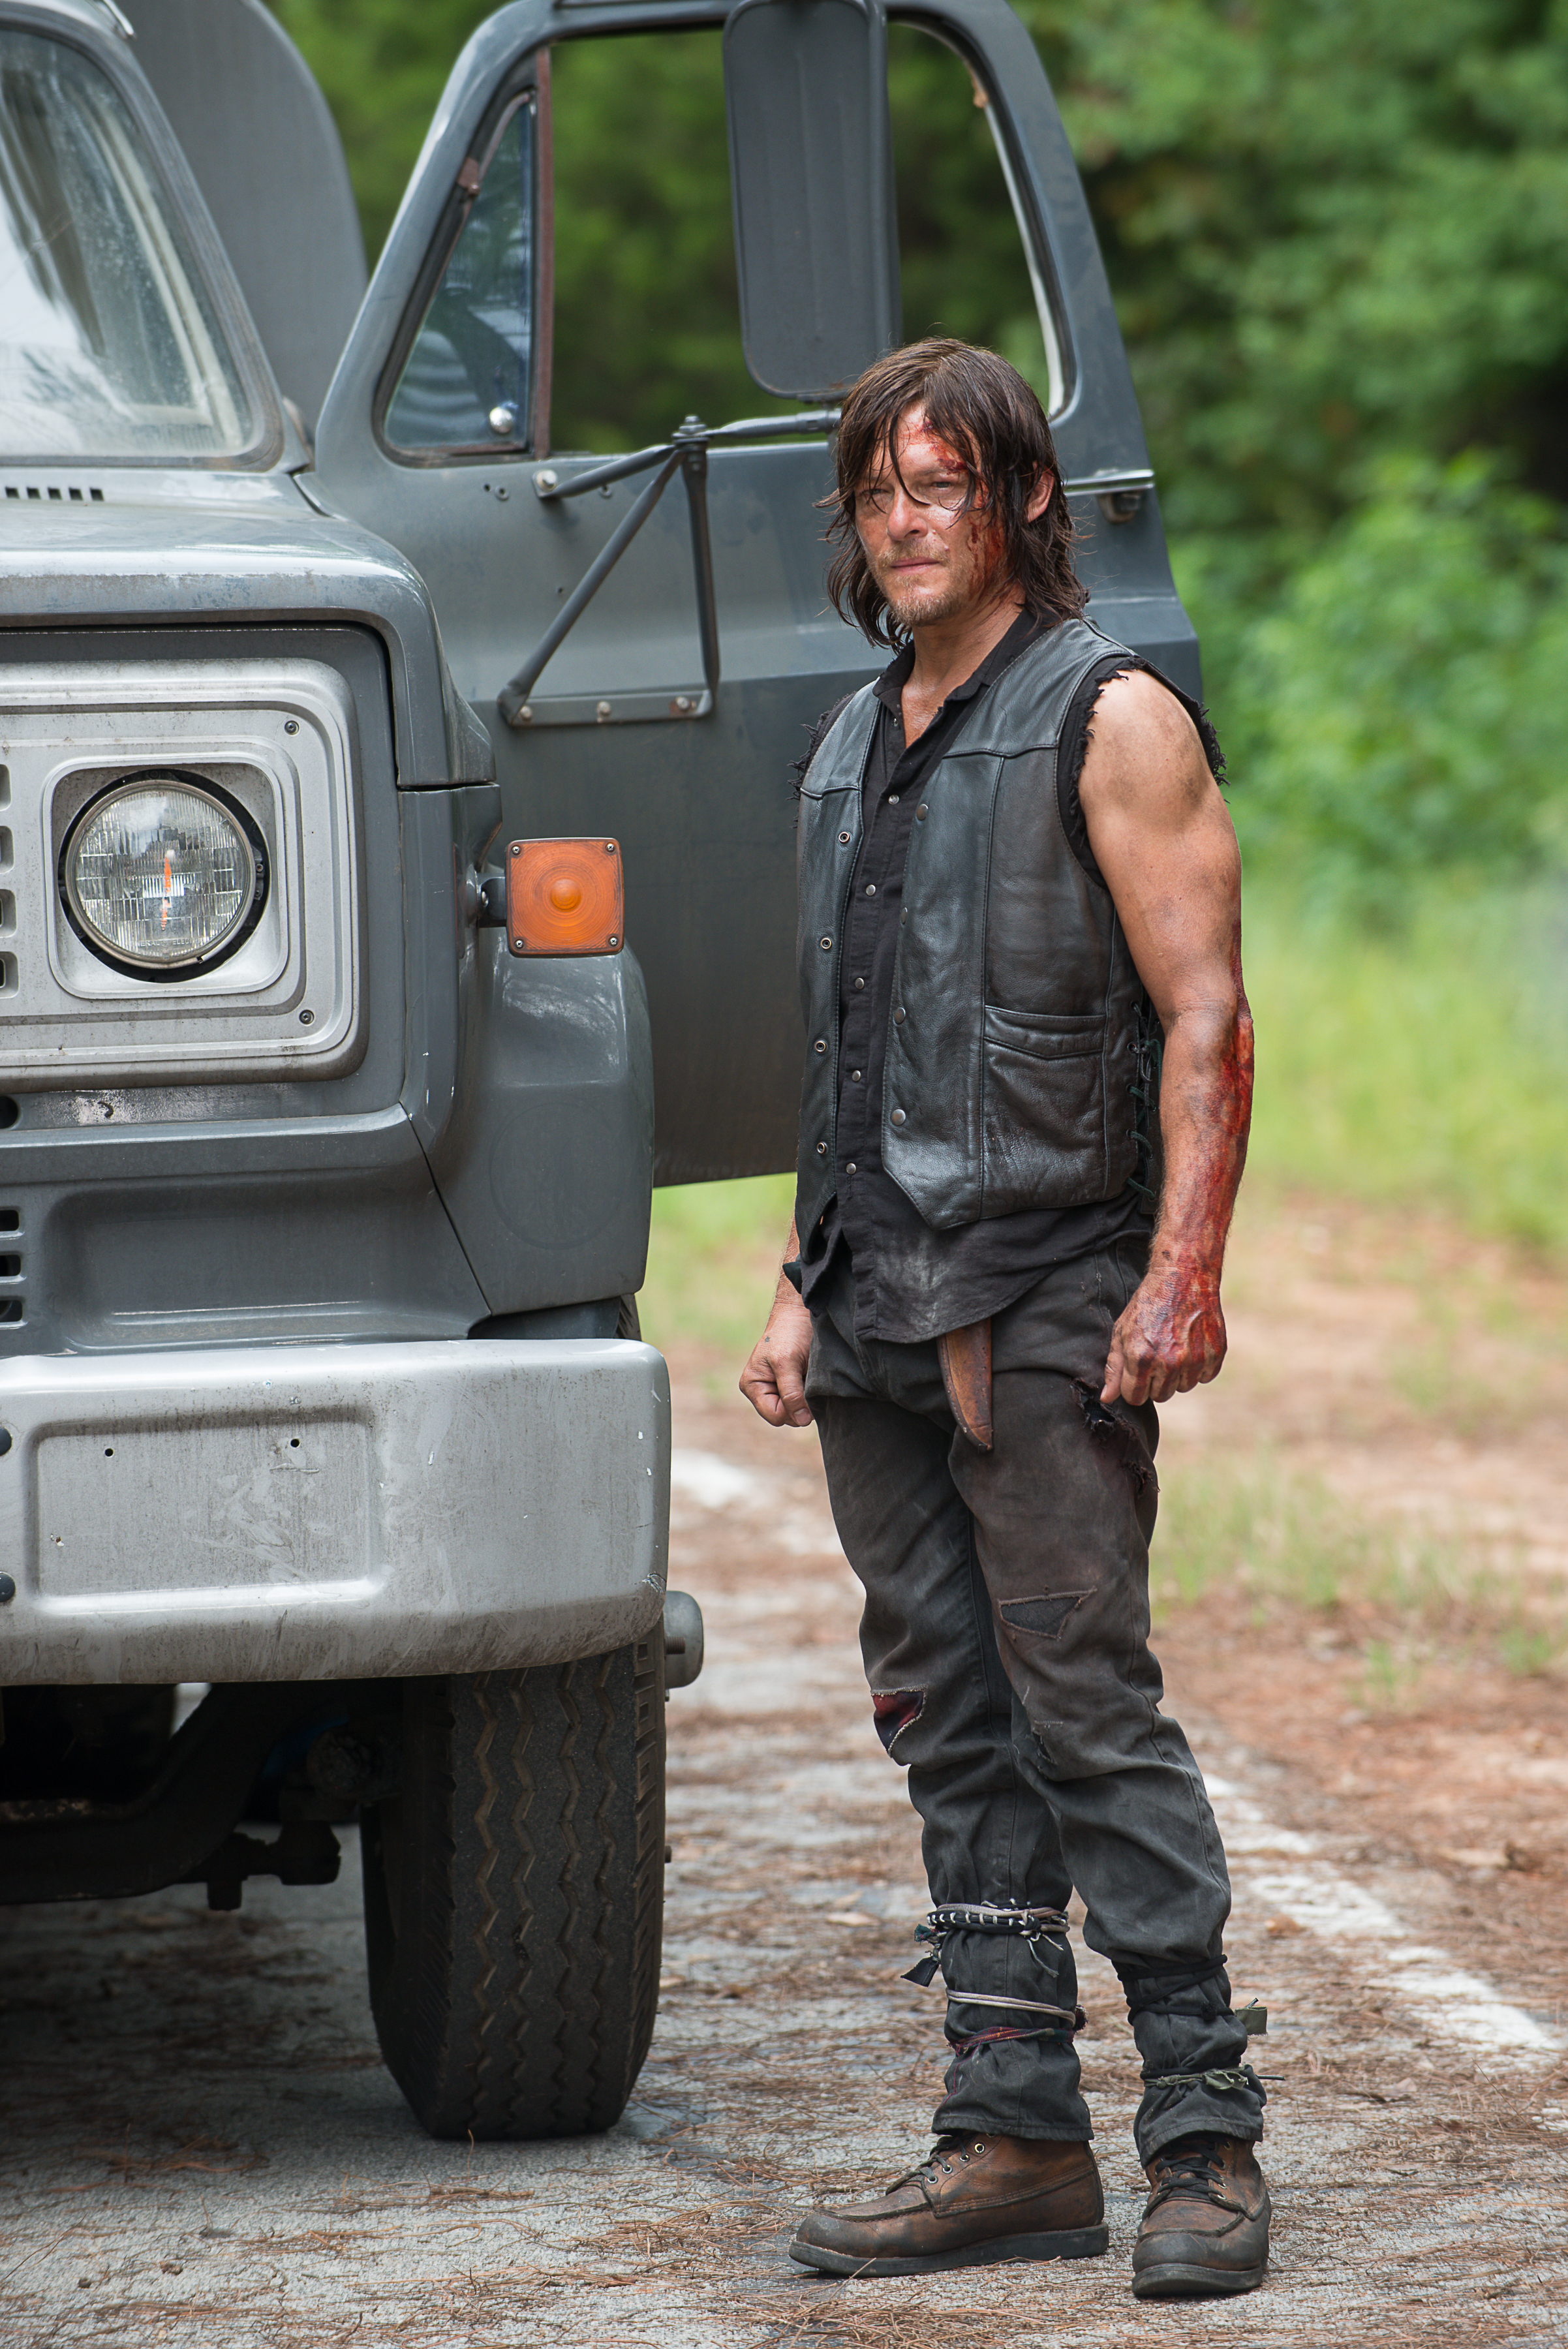 Norman Reedus als Daryl Dixon - The Walking Dead, Season 6, Episode 9 © Gene Page/AMC